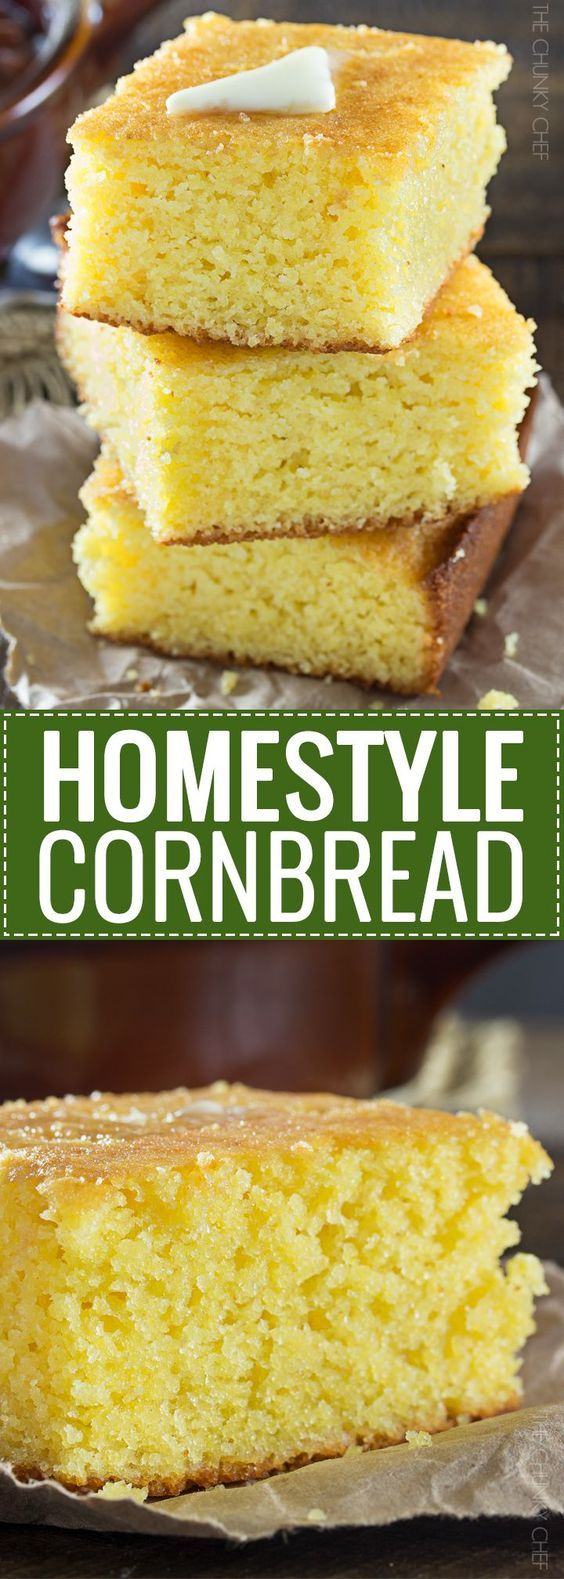 Homestyle Cornbread   This homestyle, baked from scratch cornbread is a perfect mix of savory southern cornbread and sweet northern cornbread... fluffy and soft, it's the only recipe you'll need!   http://thechunkychef.com